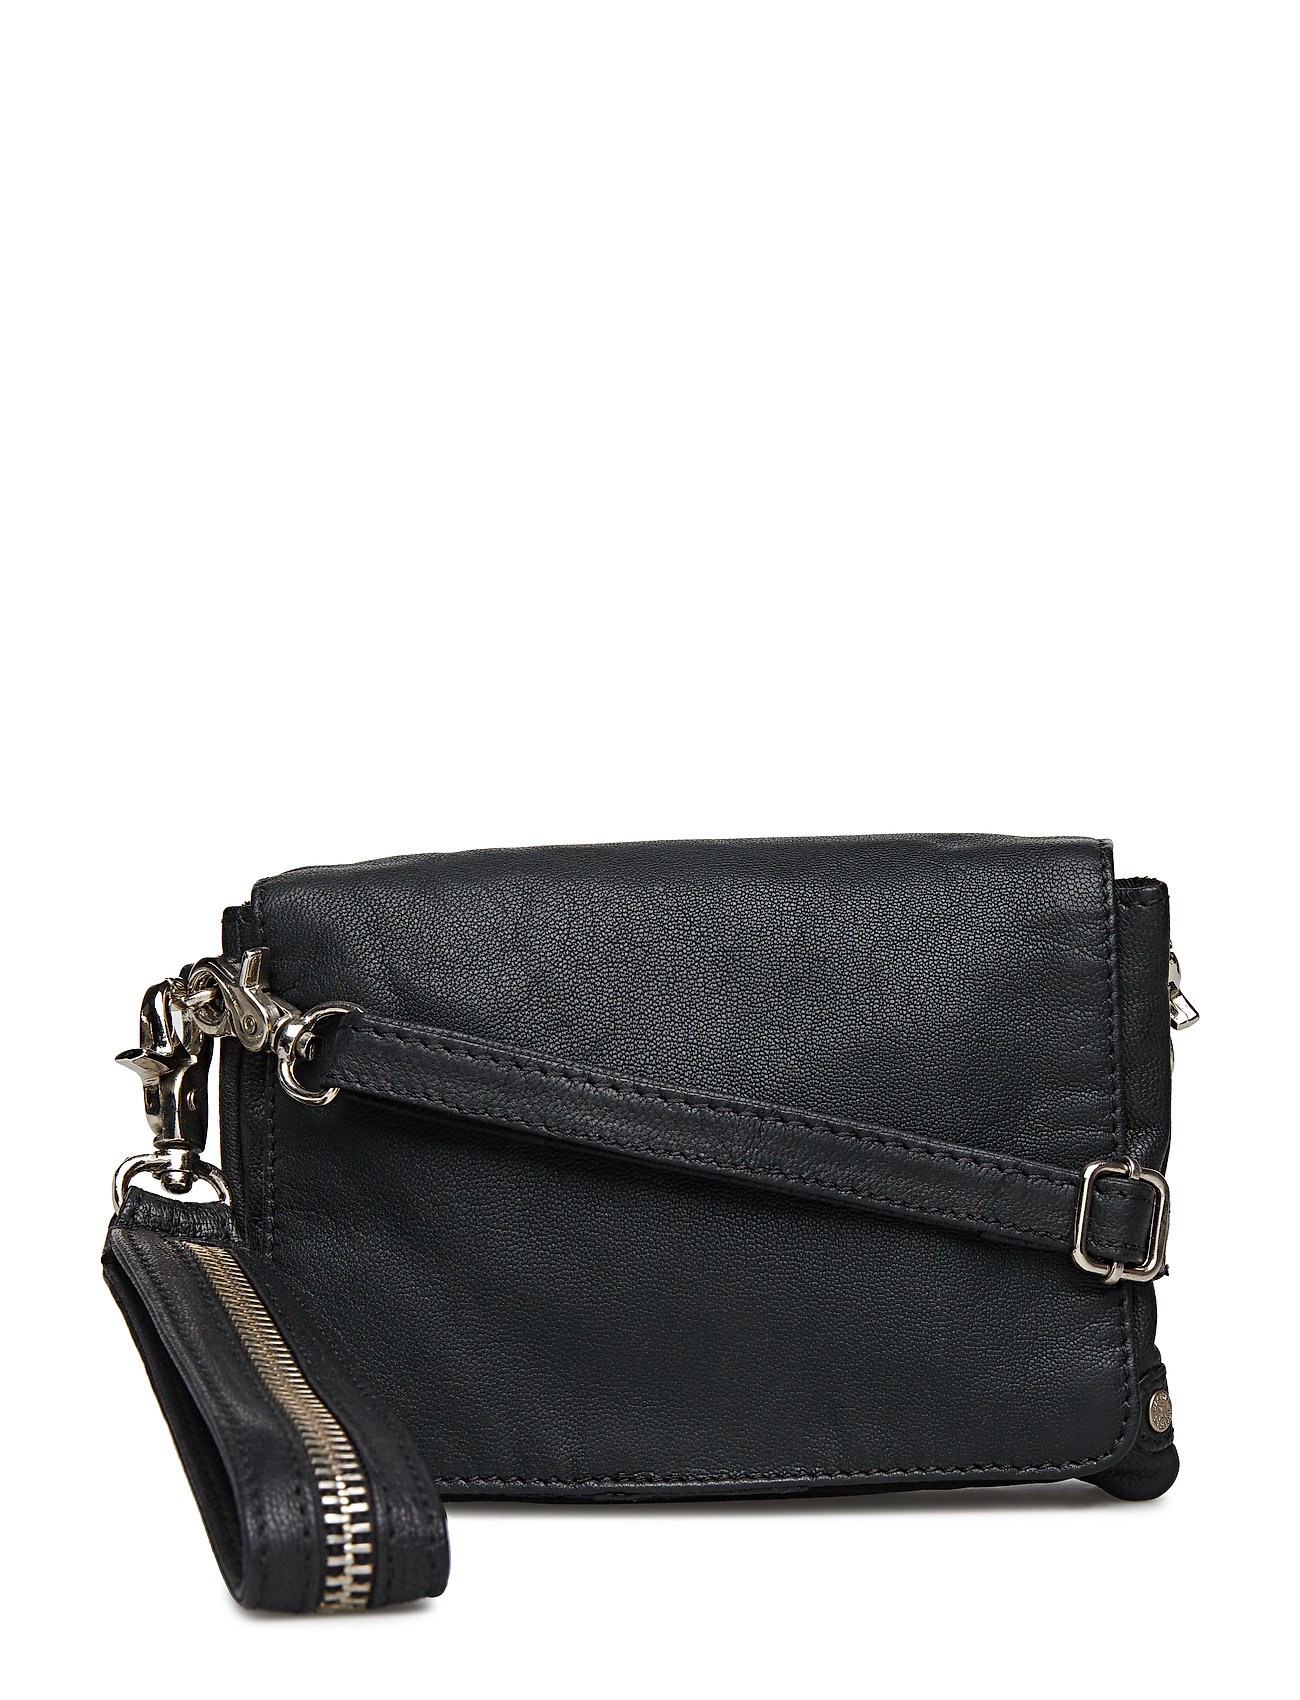 Image of Small Bag / Clutch (3115787071)